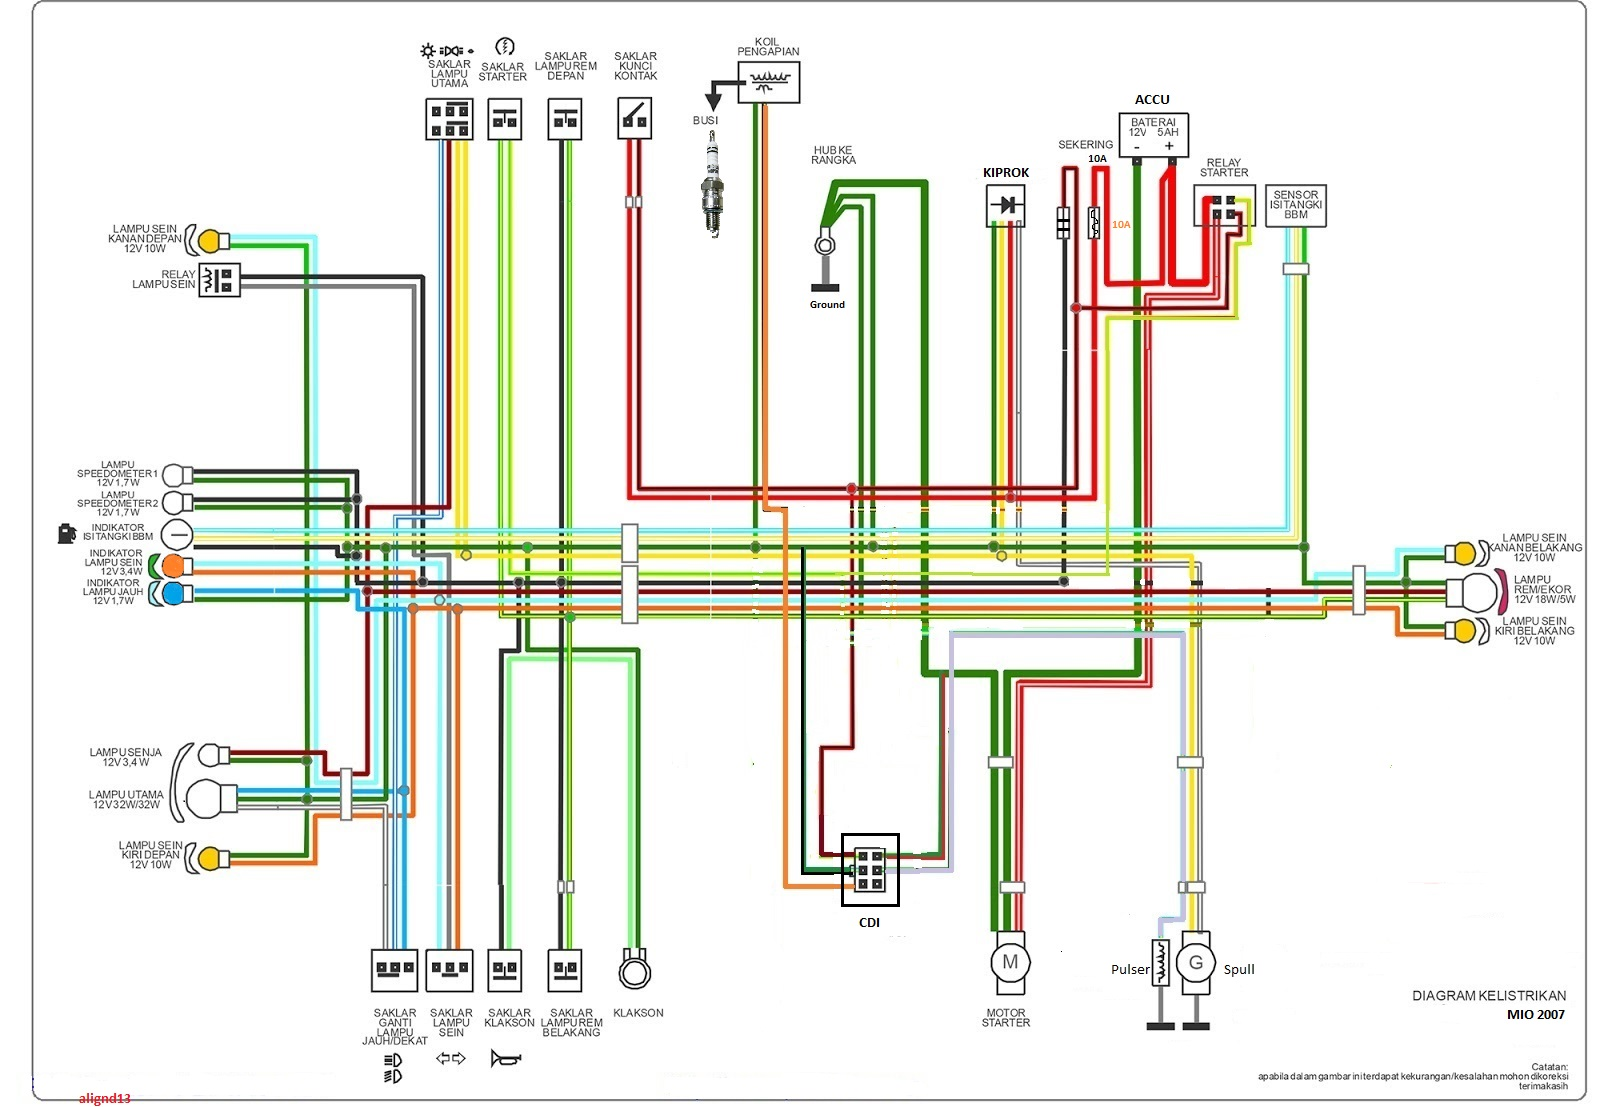 Wiring Diagram Of Mio Sporty : Wiring diagram yamaha mio sporty library